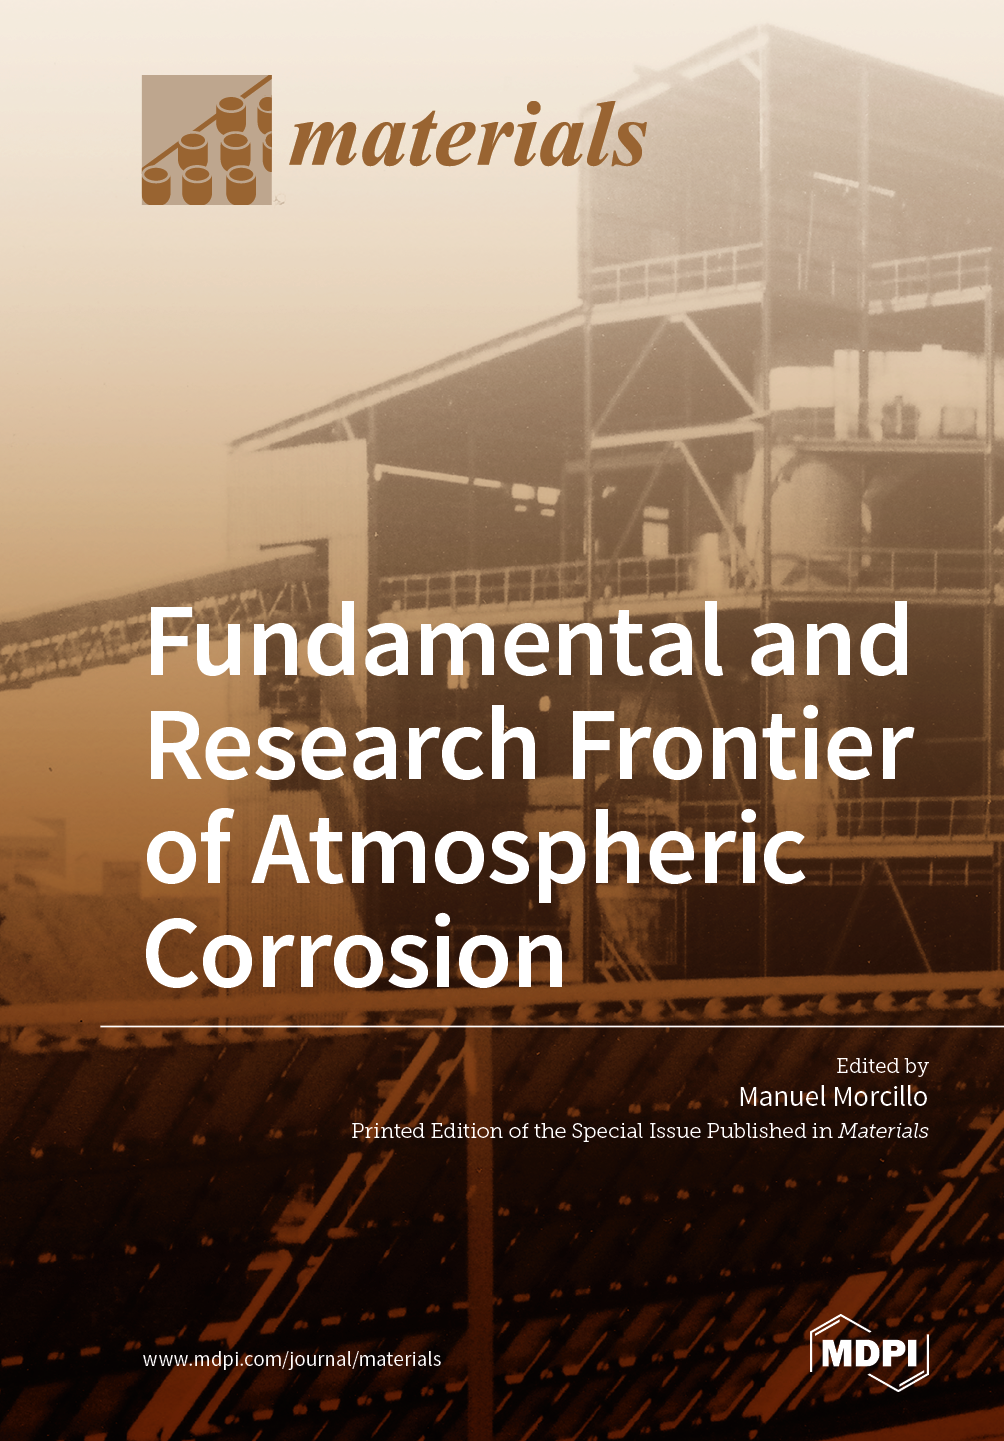 Fundamental and Research Frontier of Atmospheric Corrosion